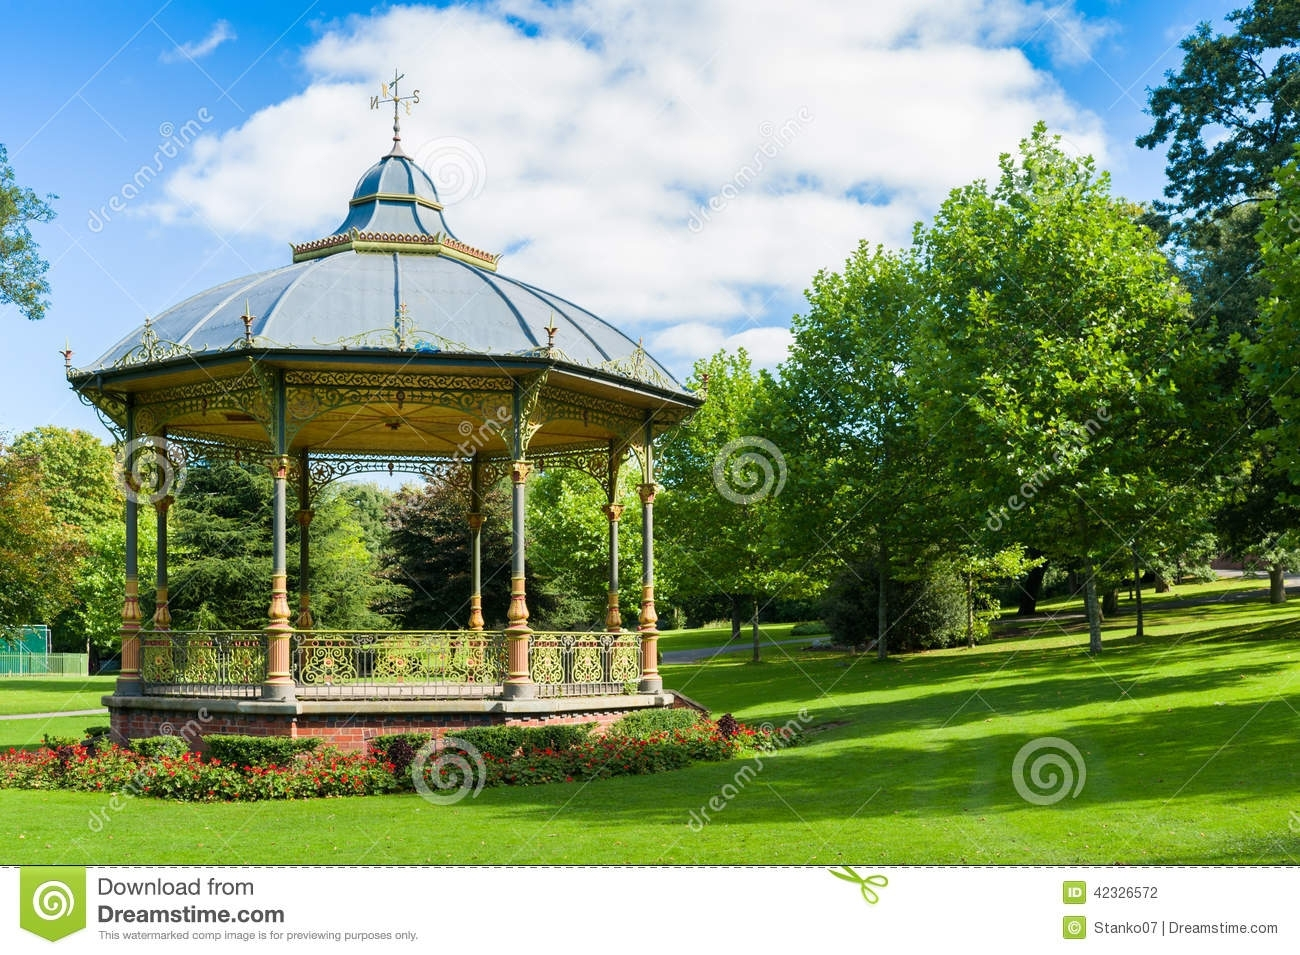 Summer House In Park Stock Photo. Image Of Forest, Building - 42326572 for Garden House Of Park Forest